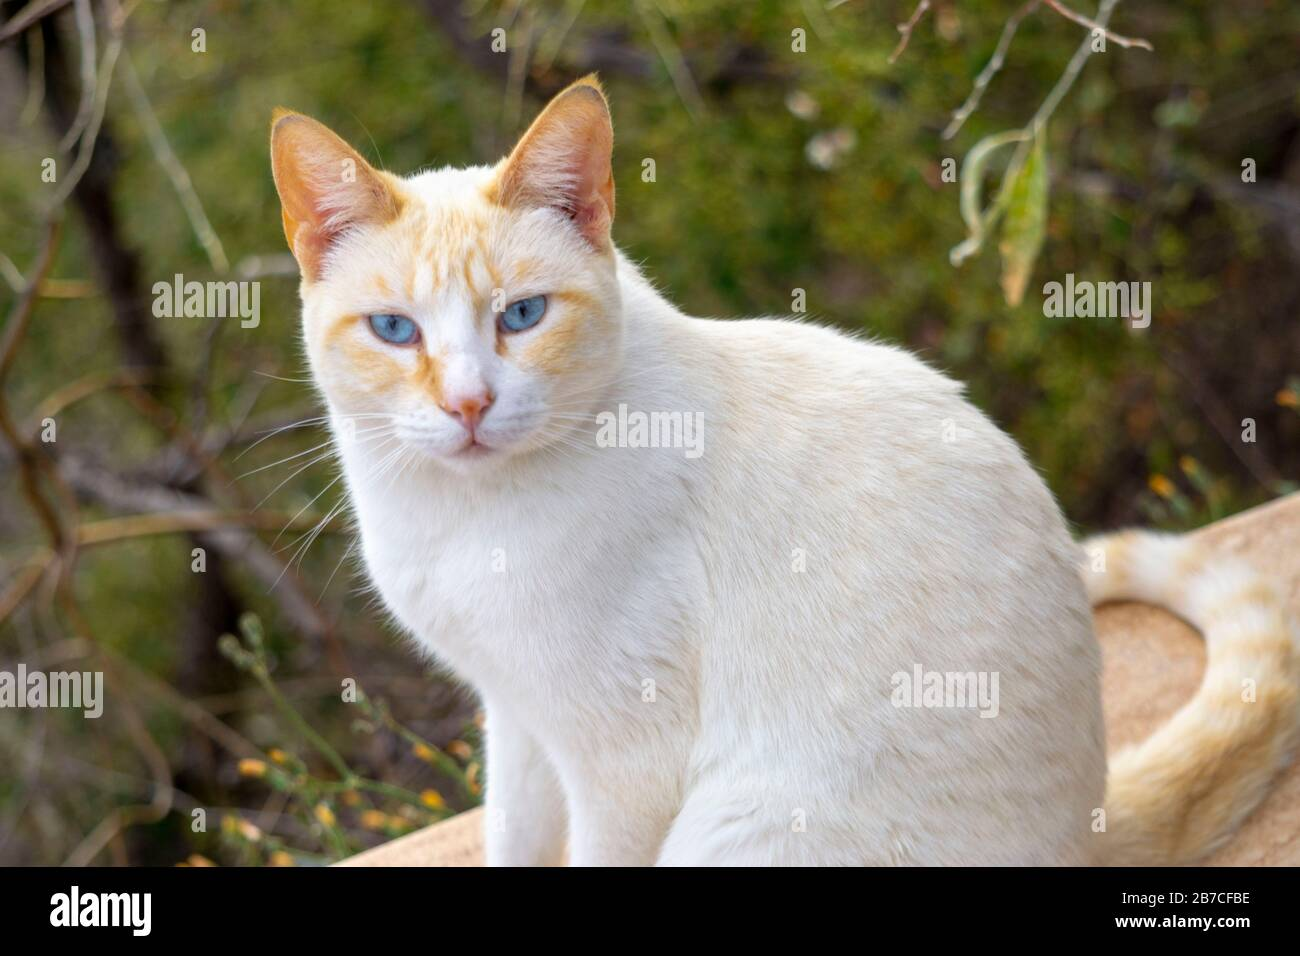 White Siamese Cat High Resolution Stock Photography And Images Alamy